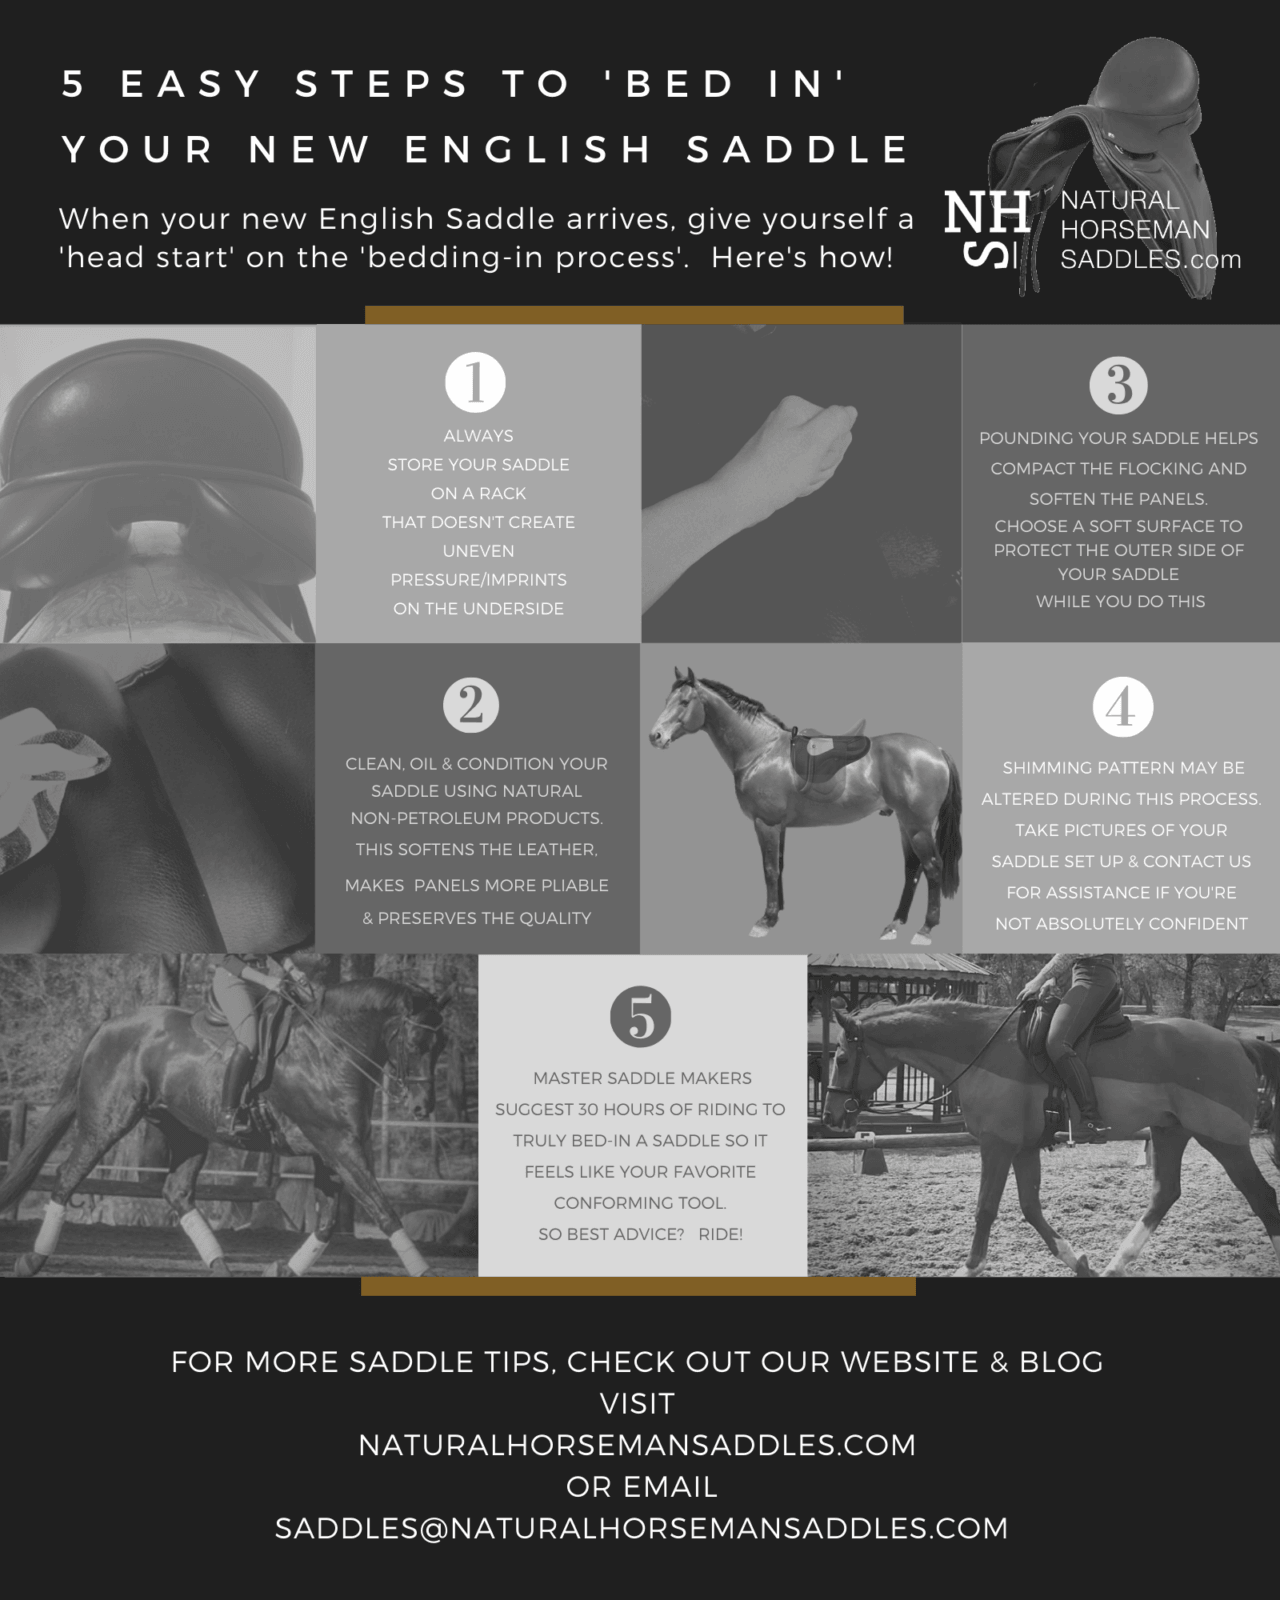 5 Easy Steps to BED IN Your New English Saddle INFOGRAPHIC